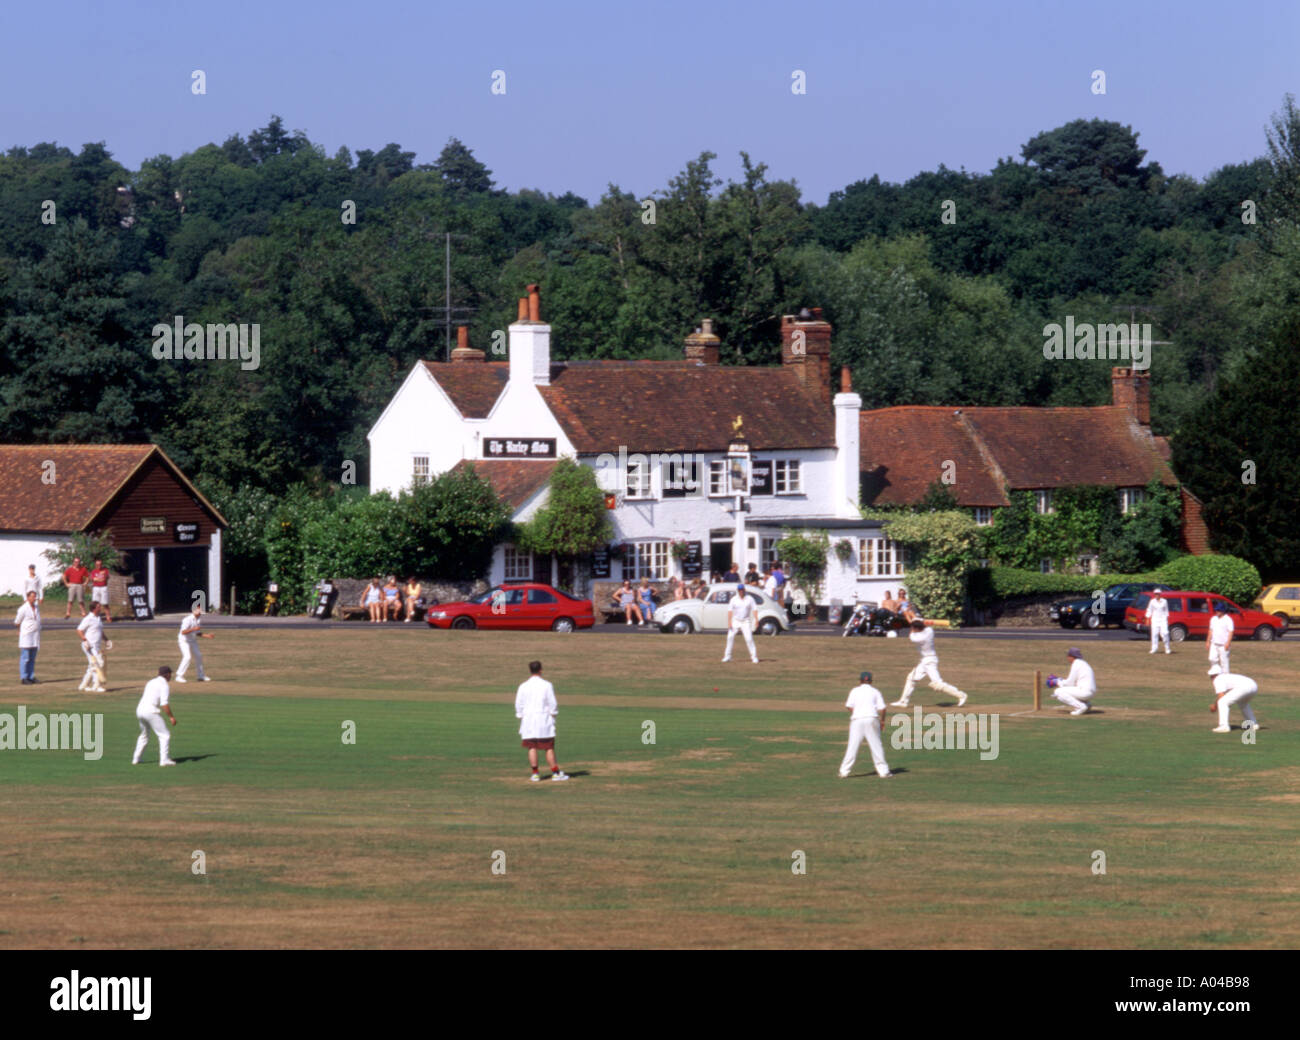 England Tilford Village green cricket match - Stock Image